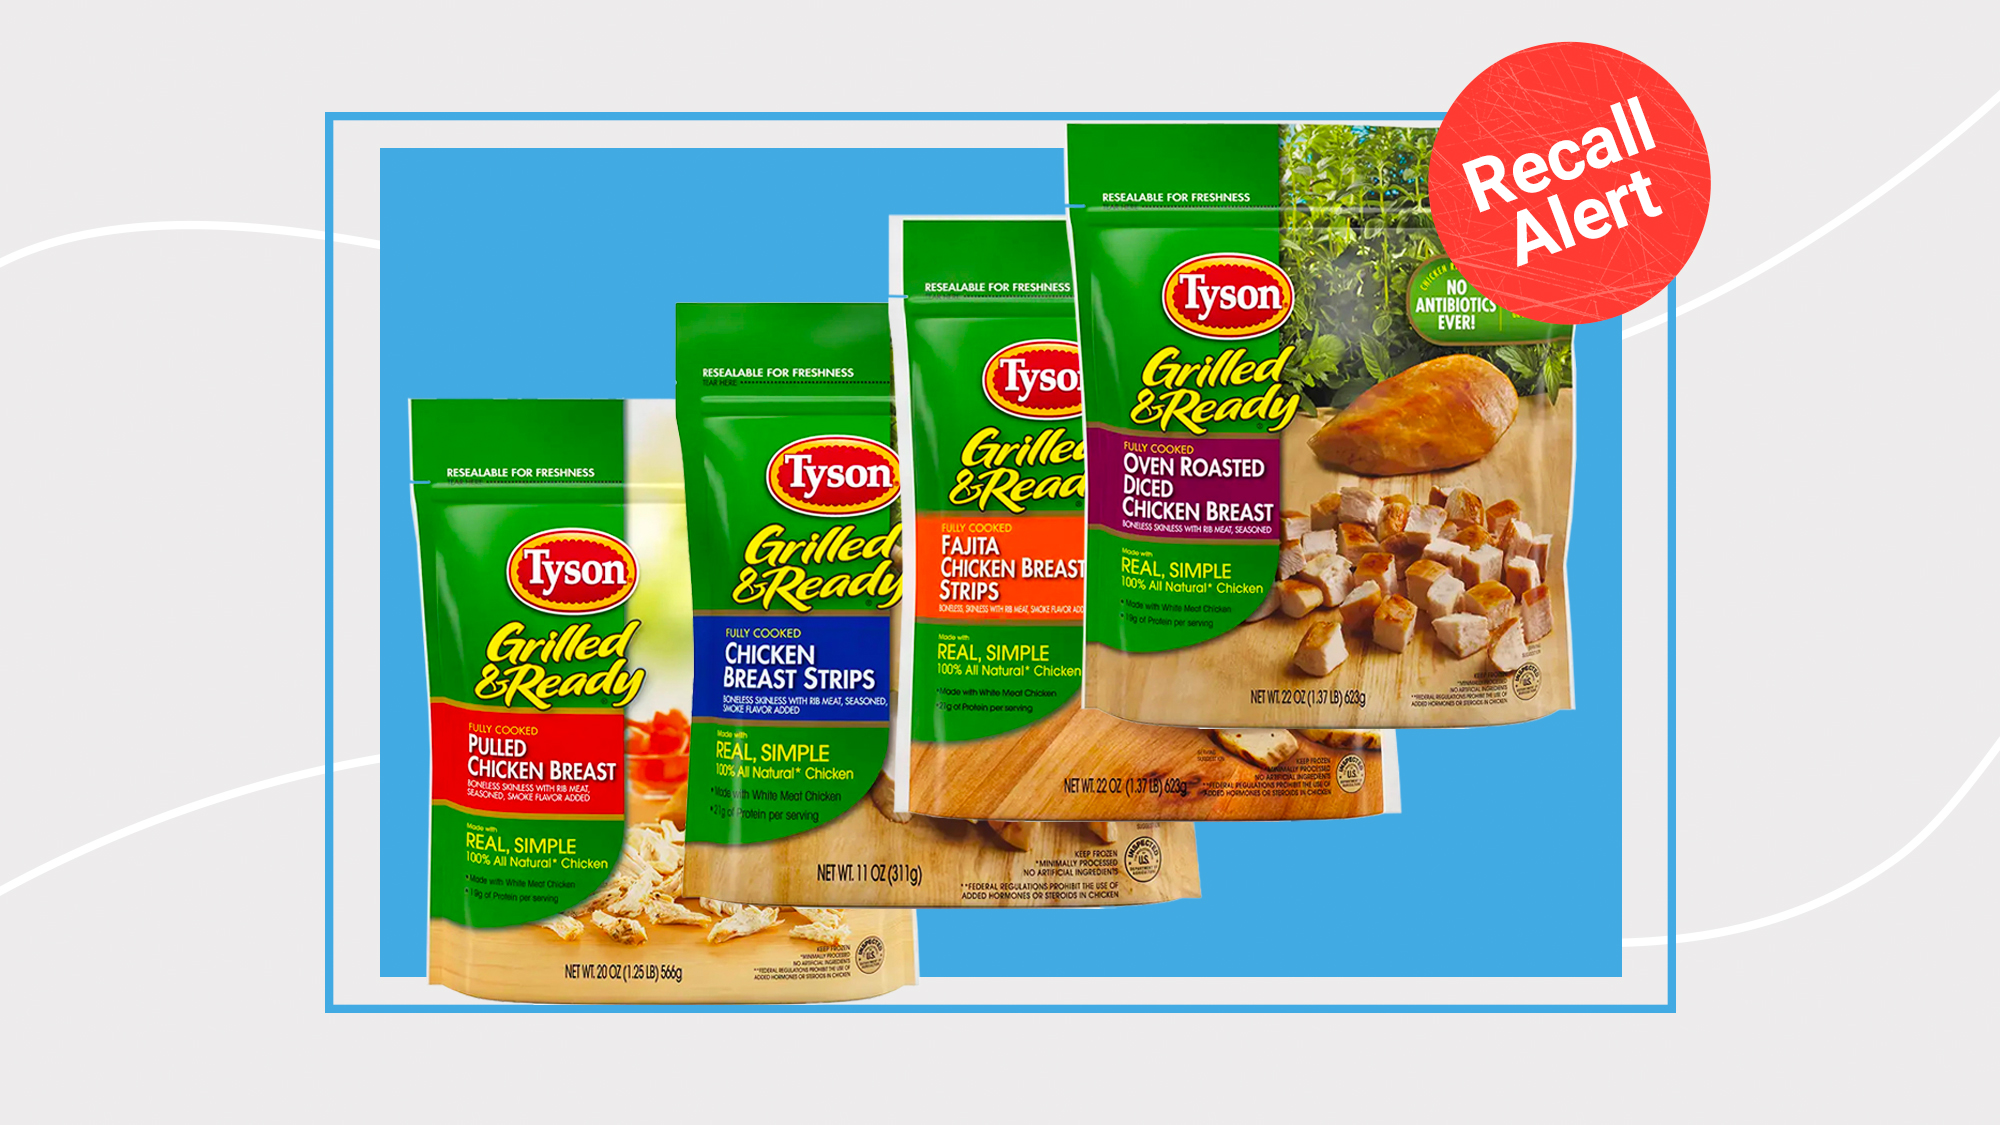 Fully cooked Tyson Frozen chicken products on a designed background with a recall alert button